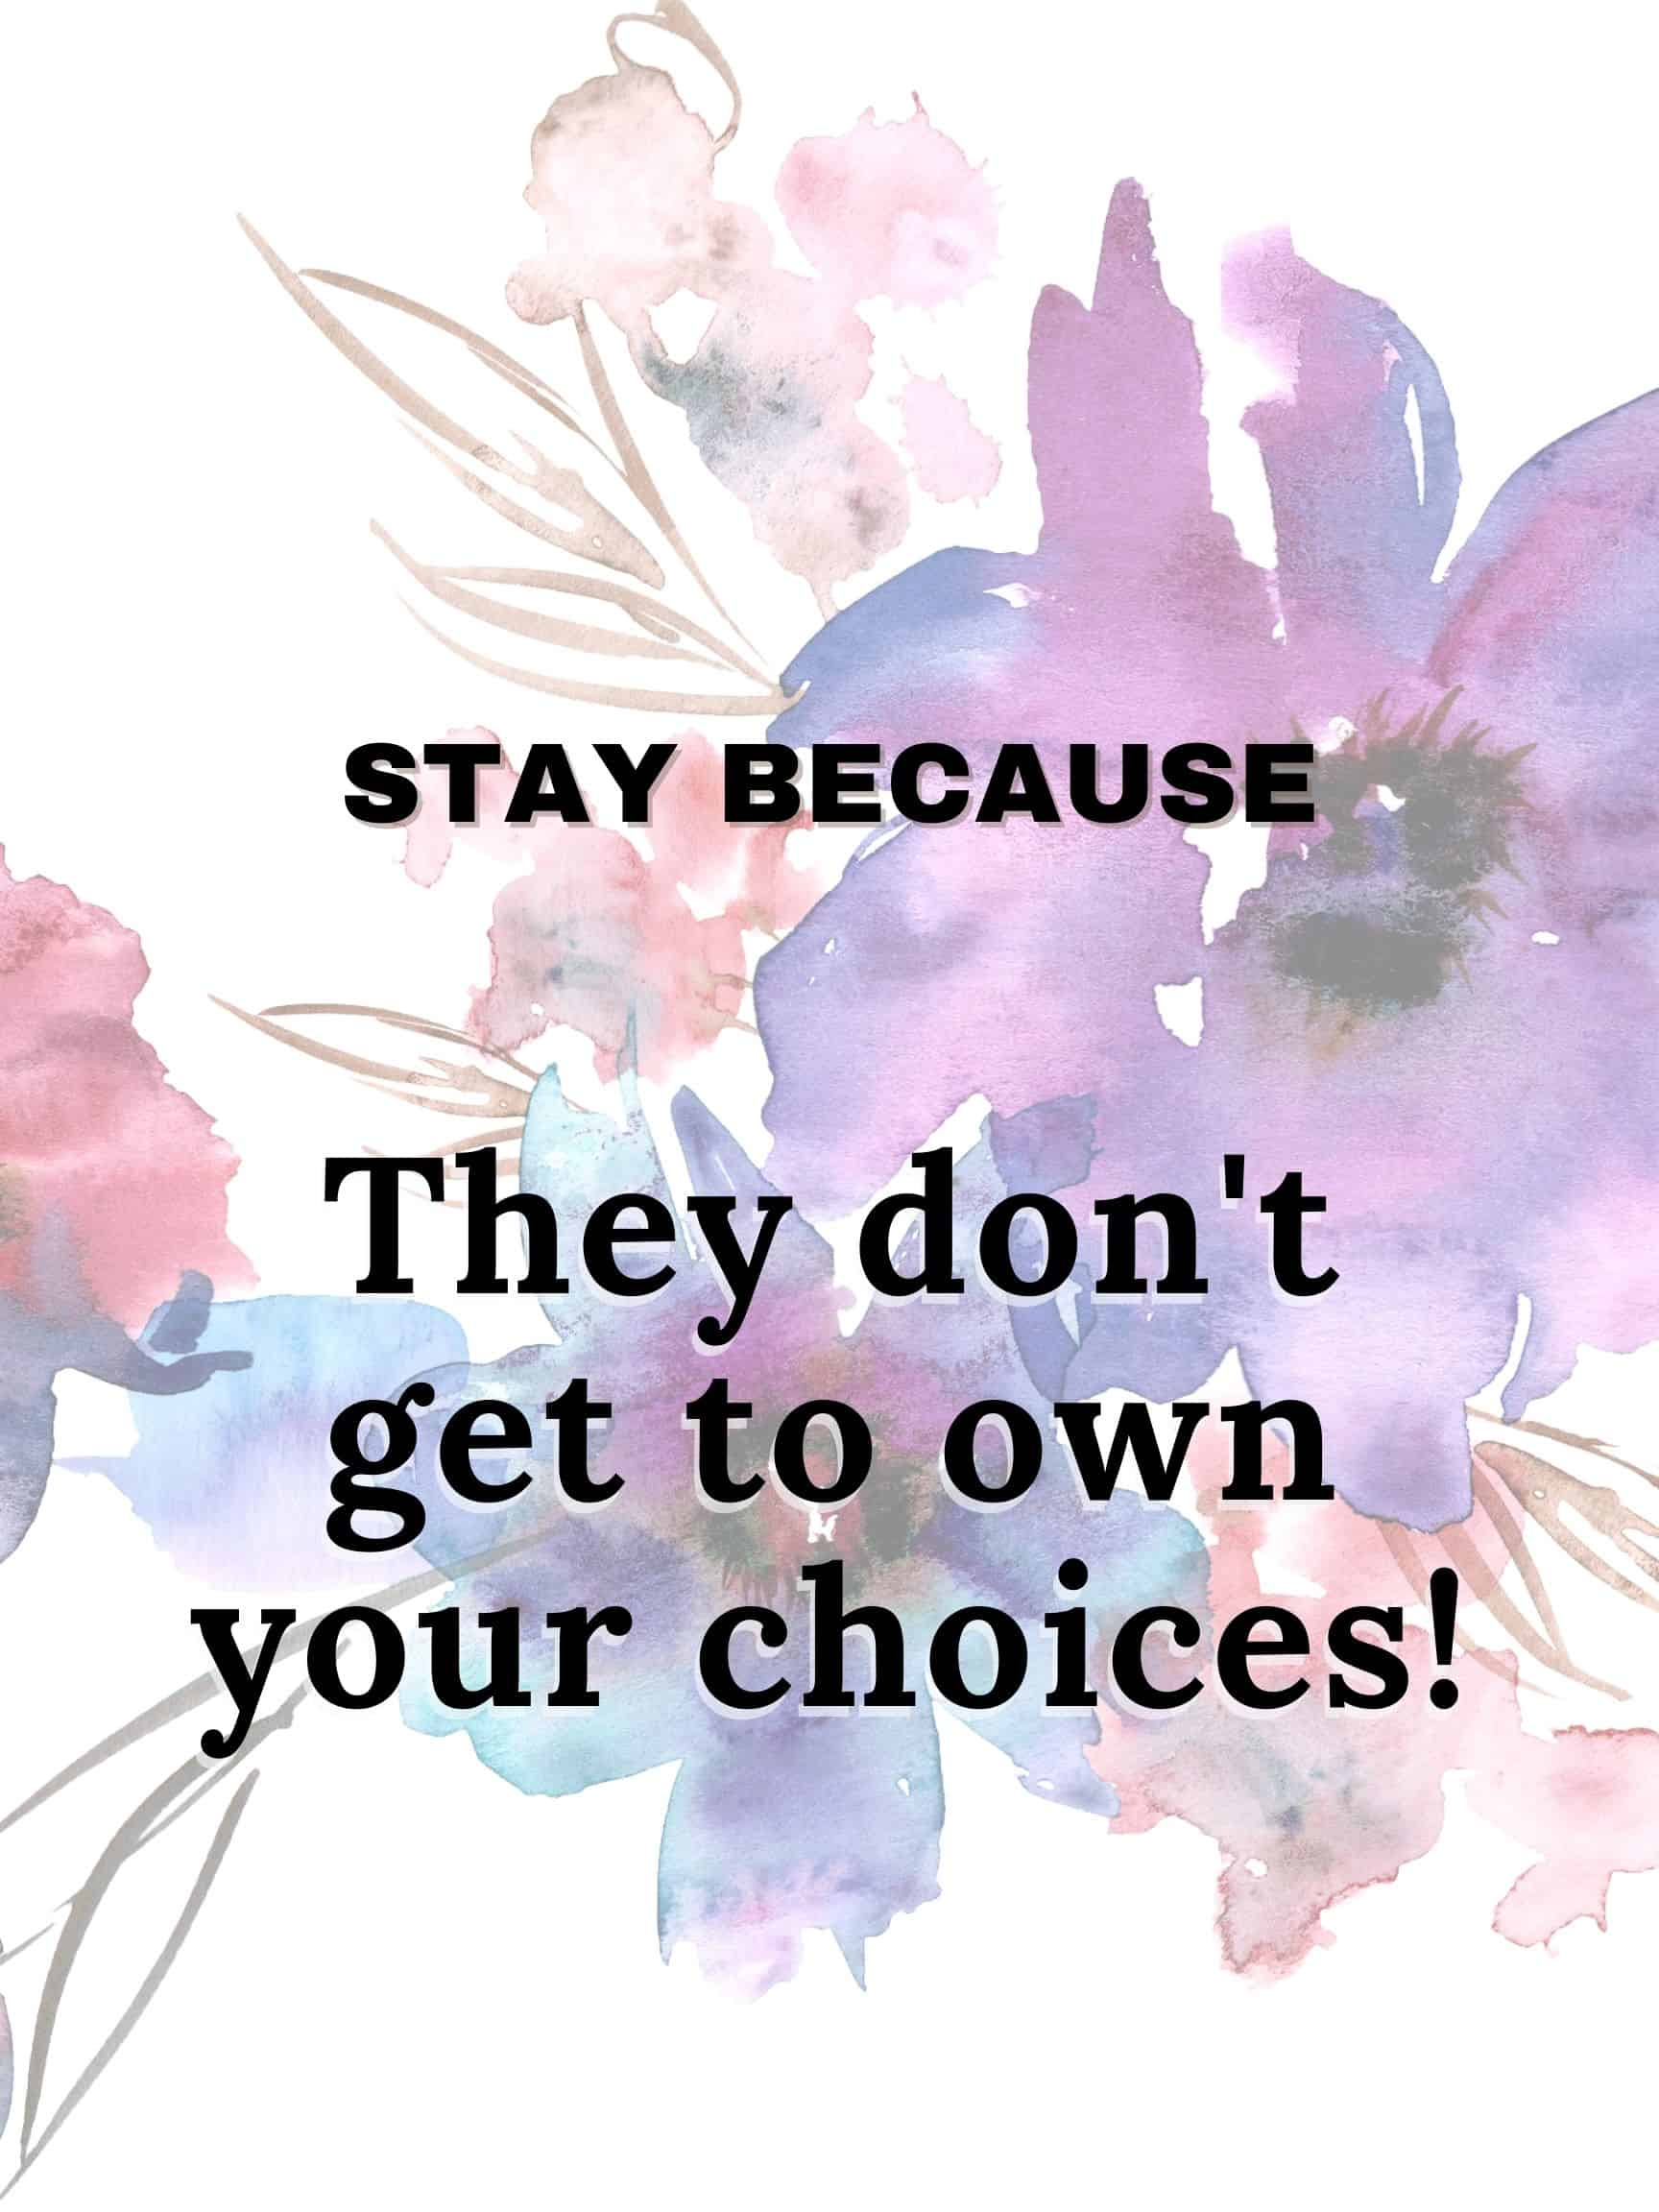 Stay because they don't get to own your choices #StayBecause